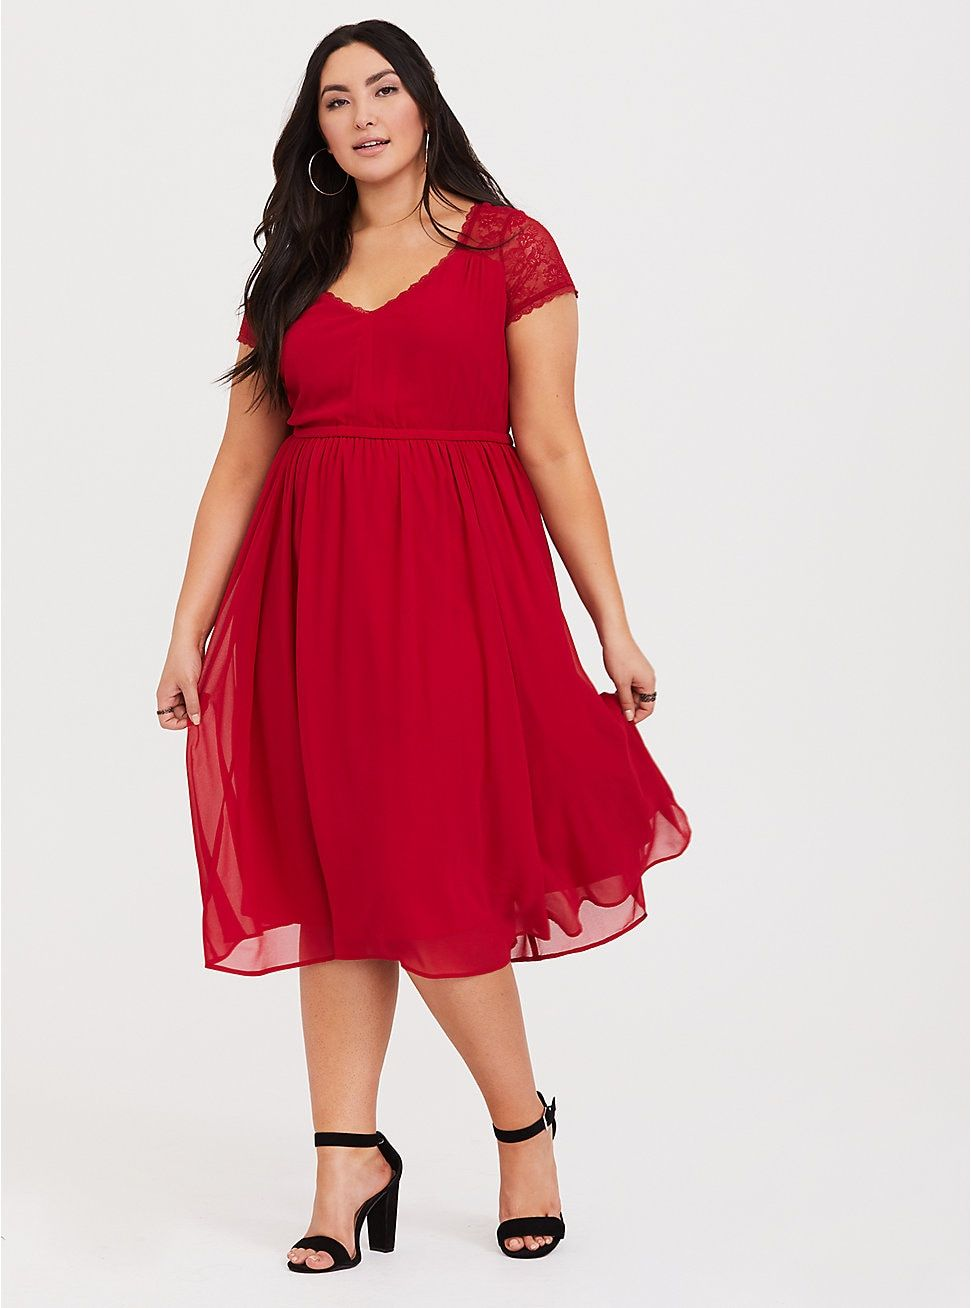 38eae052c59 Hera A-Line Party Dress in 2019